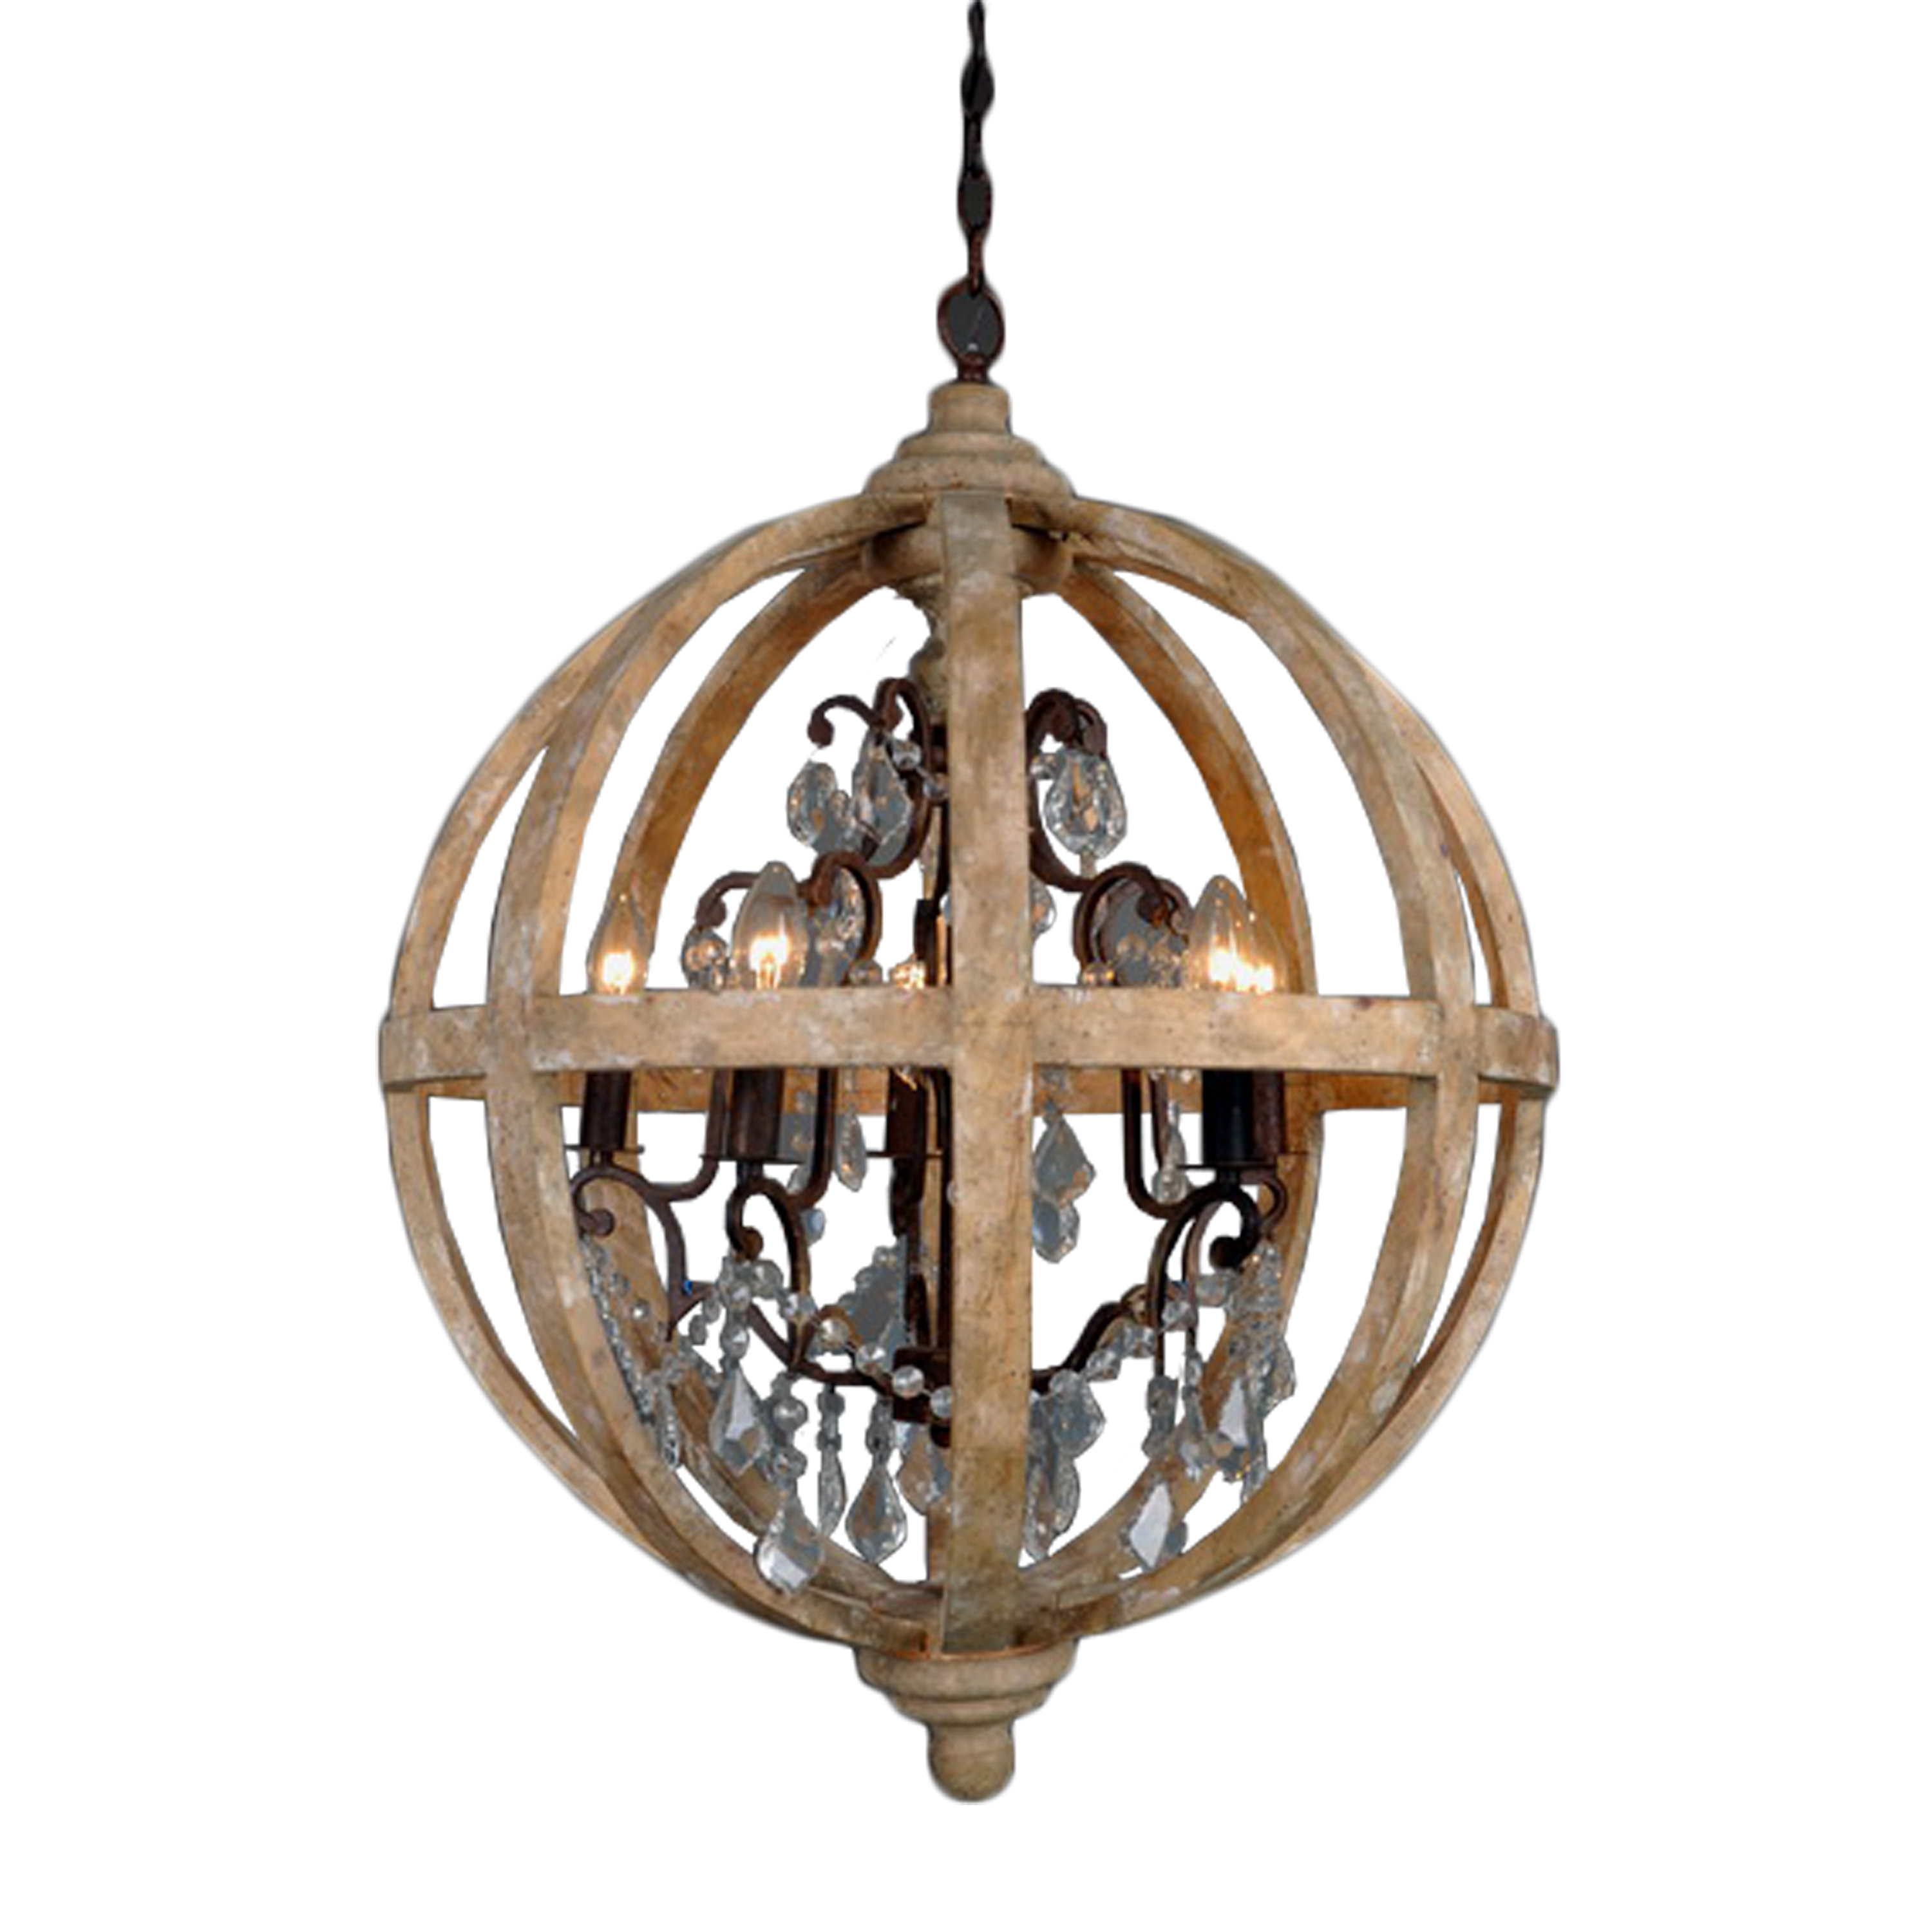 Andreana 5 Light Globe Chandelier With Most Current Filipe Globe Chandeliers (Gallery 13 of 20)